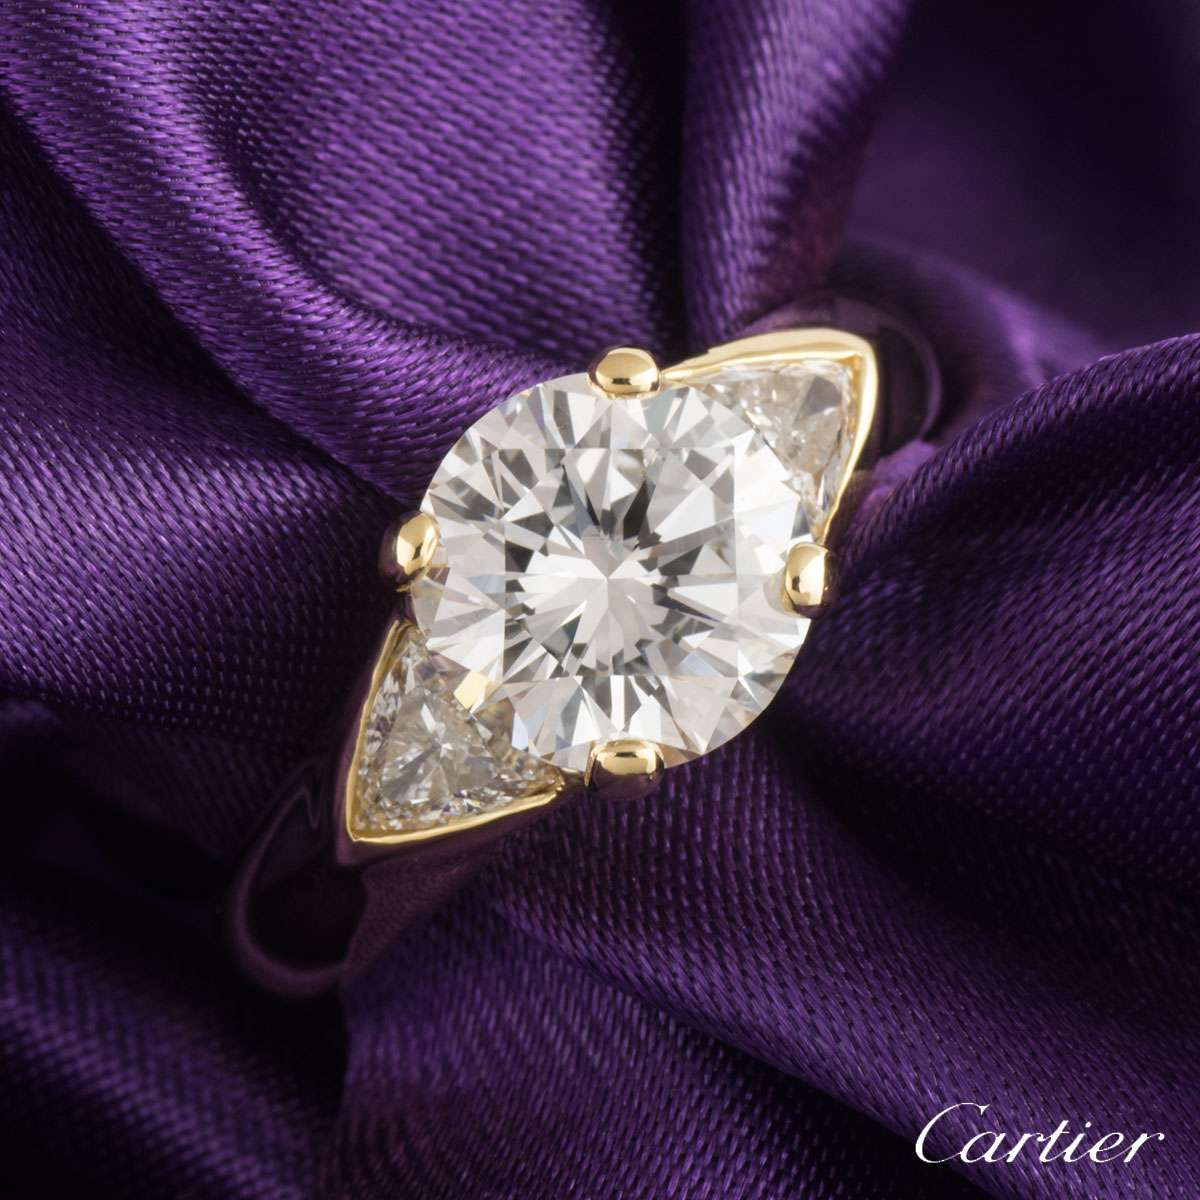 Cartier Yellow Gold Diamond Ring 2.50ct G/VS2